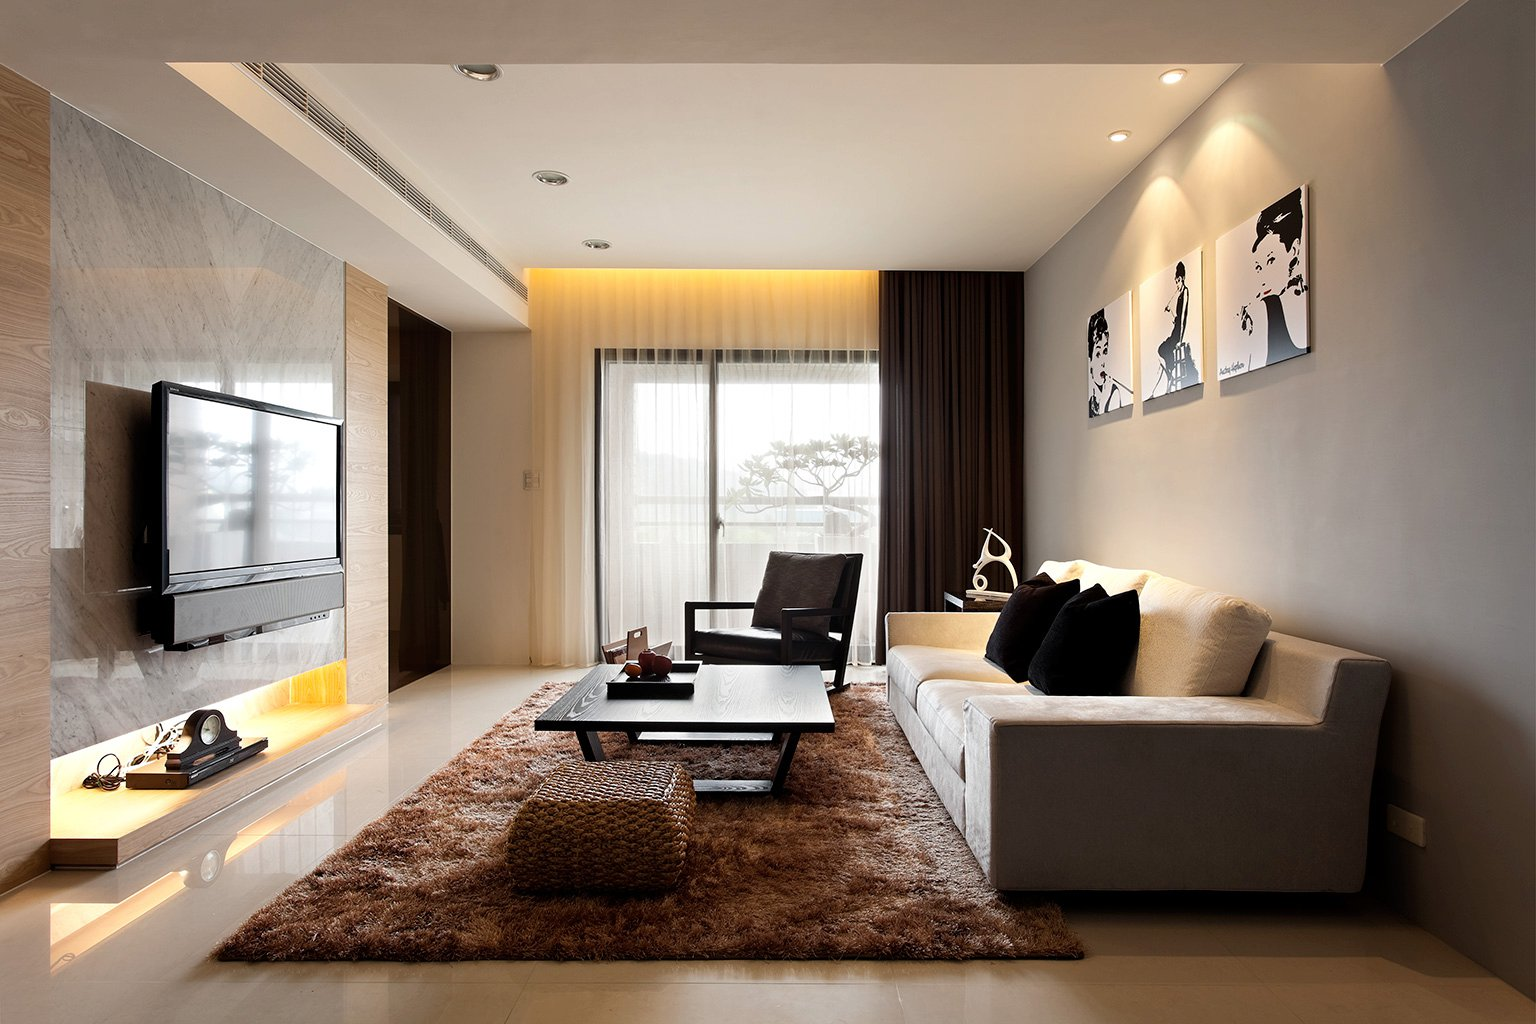 Magnificent Modern Living Room Decor 1536 x 1024 · 238 kB · jpeg